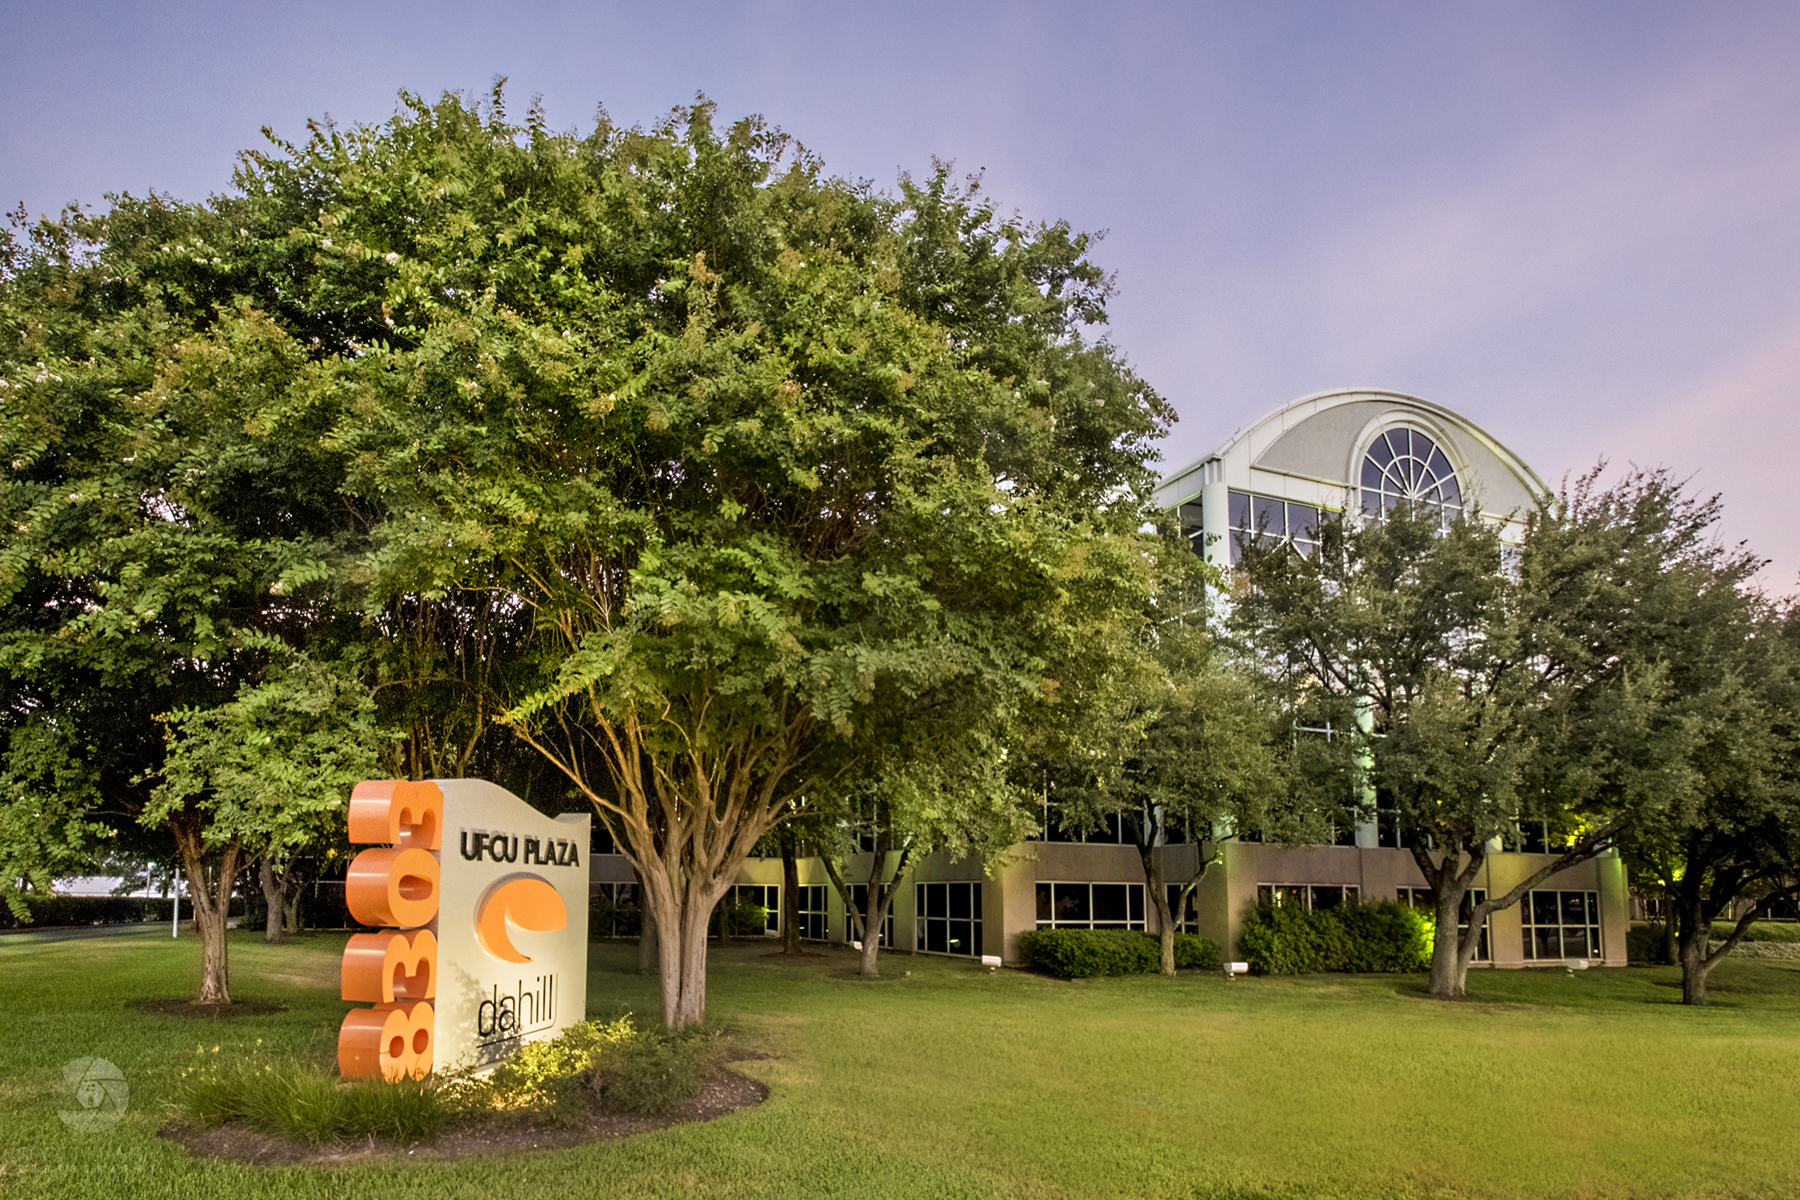 An exterior image of UFCU plaza in Austin with a monument sign and tree